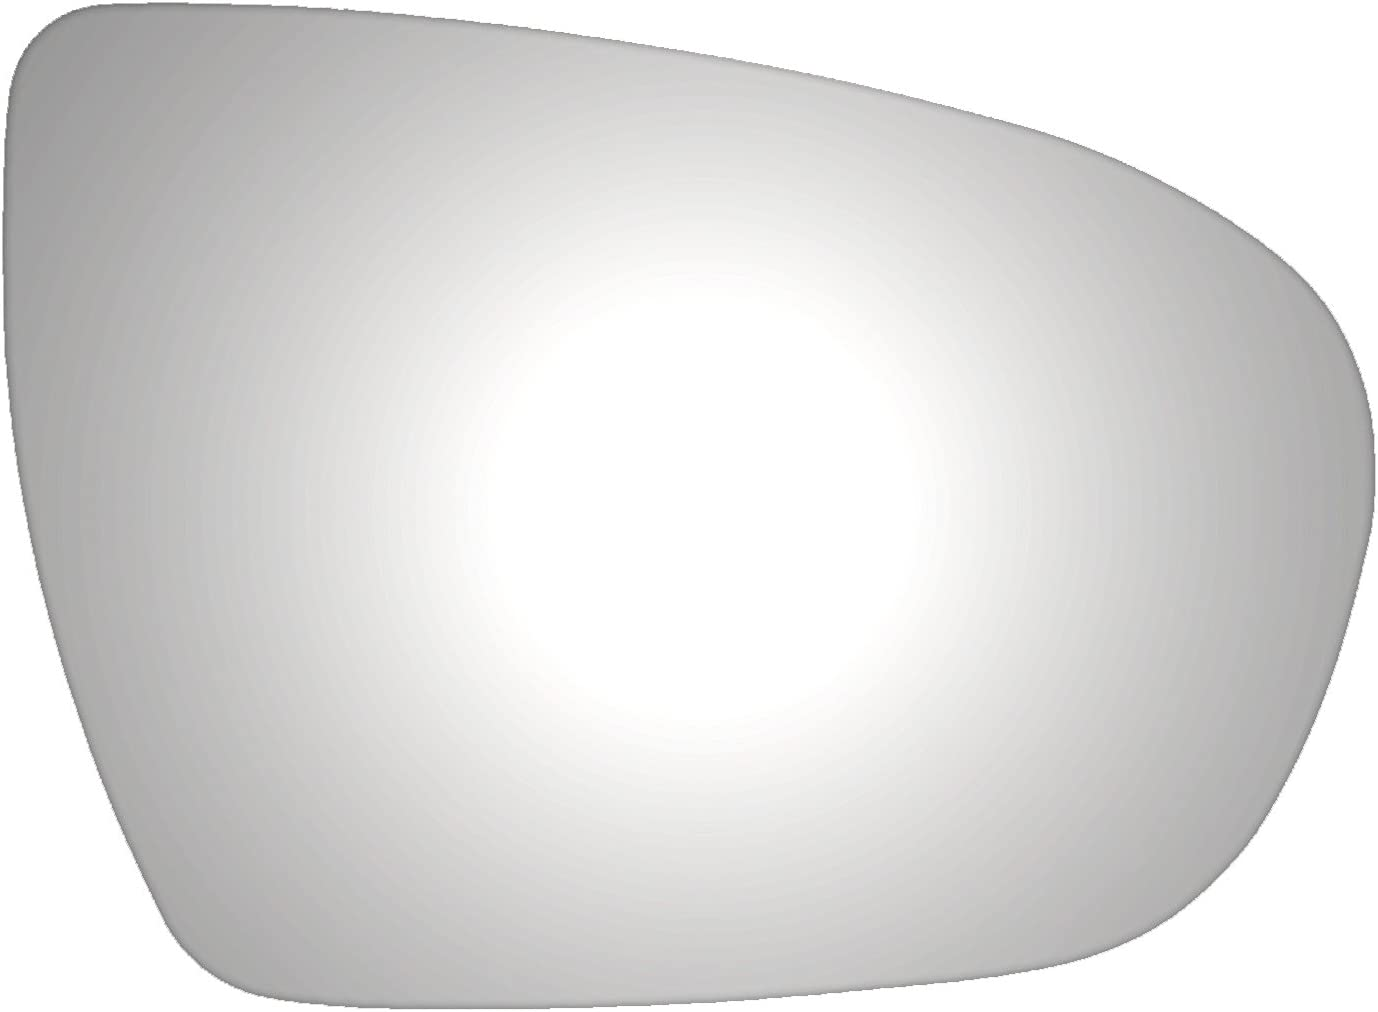 Burco 5462 Convex Passenger Side Replacement Mirror Glass 2011, 2012, 2013 for 11-13 Kia Optima Assembly Not Included